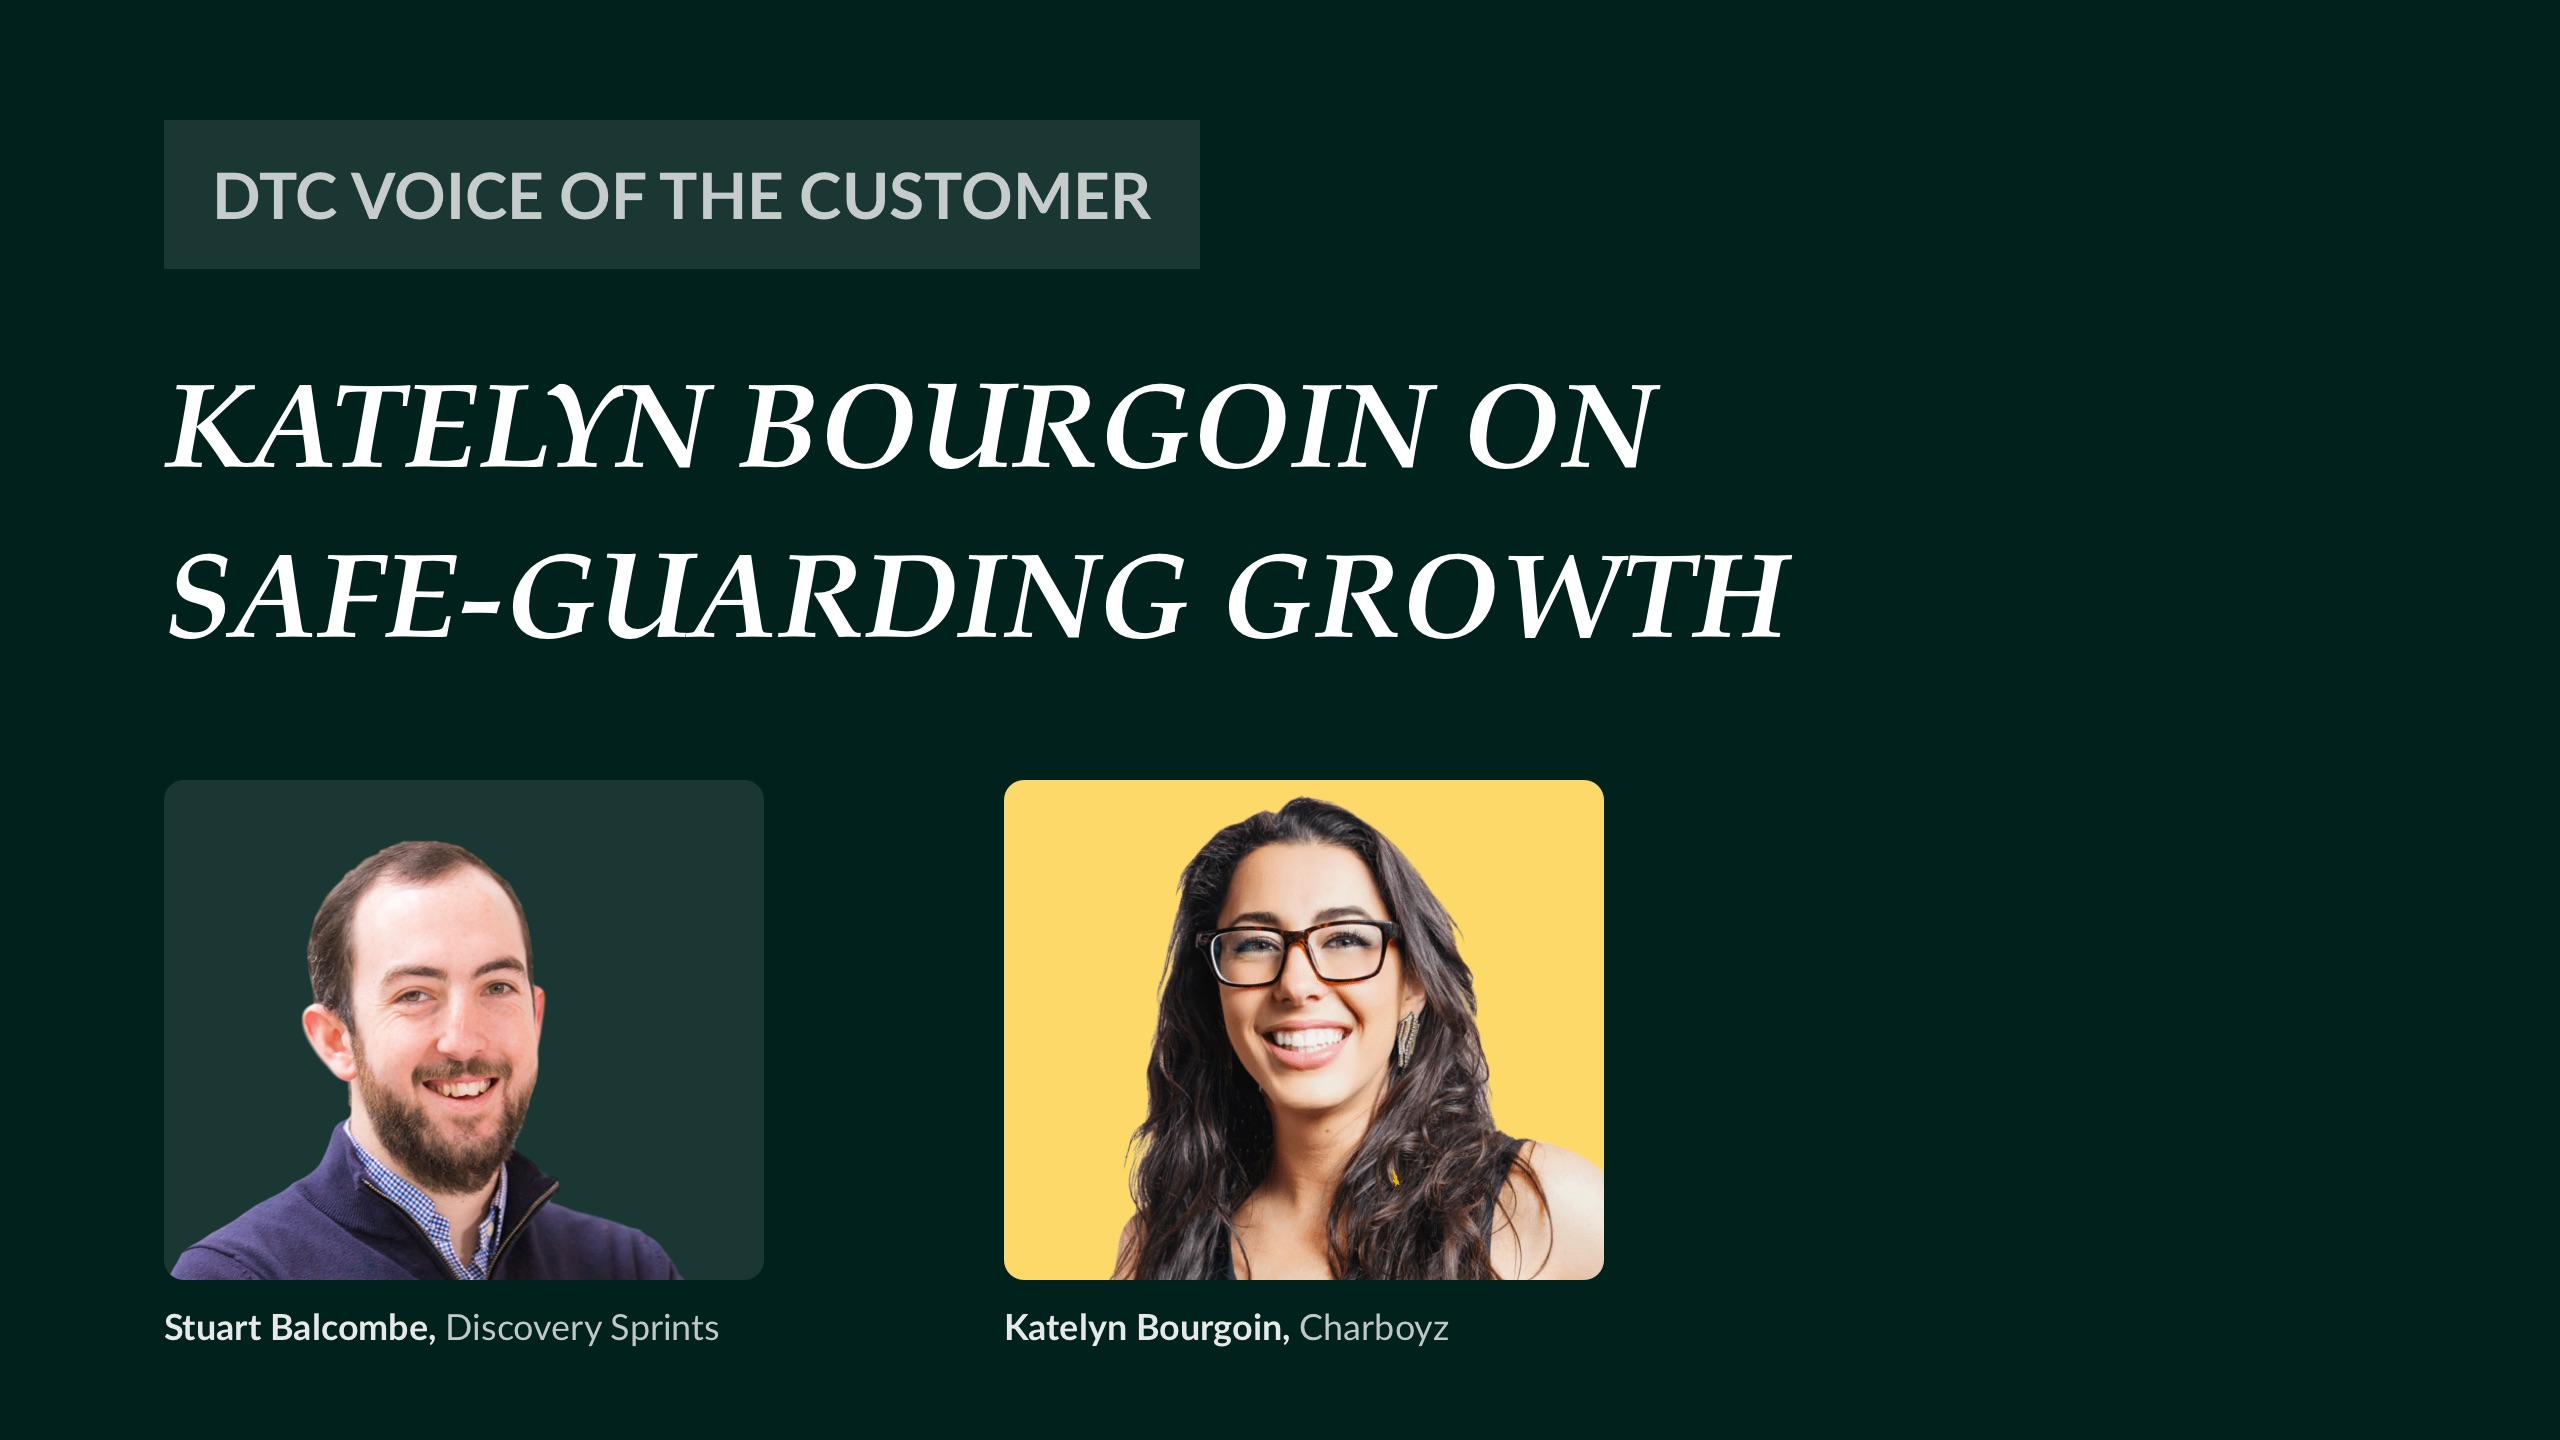 Katelyn Bourgoin on safe-guarding growth